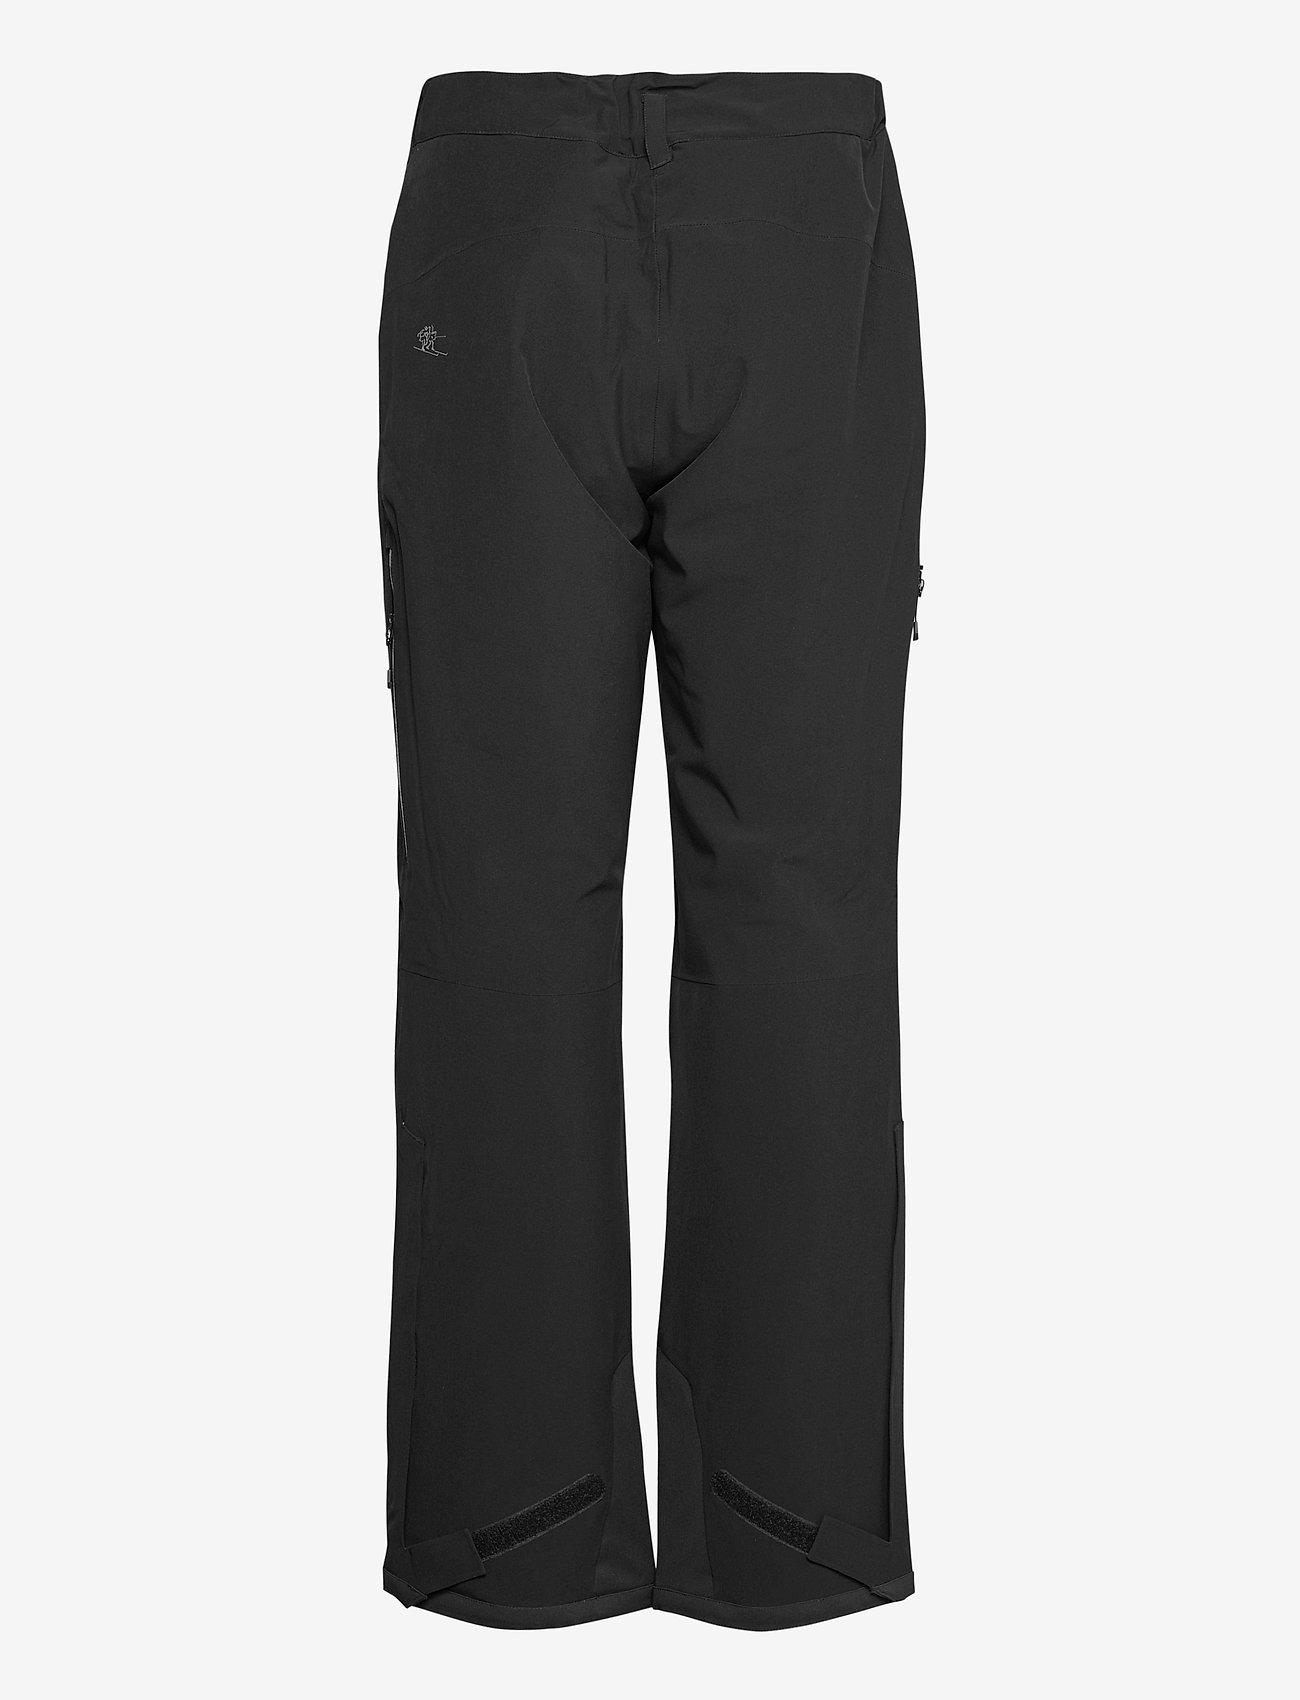 Bergans - Oppdal Insulated Lady Pnt - skibroeken - black / solid charcoal - 1